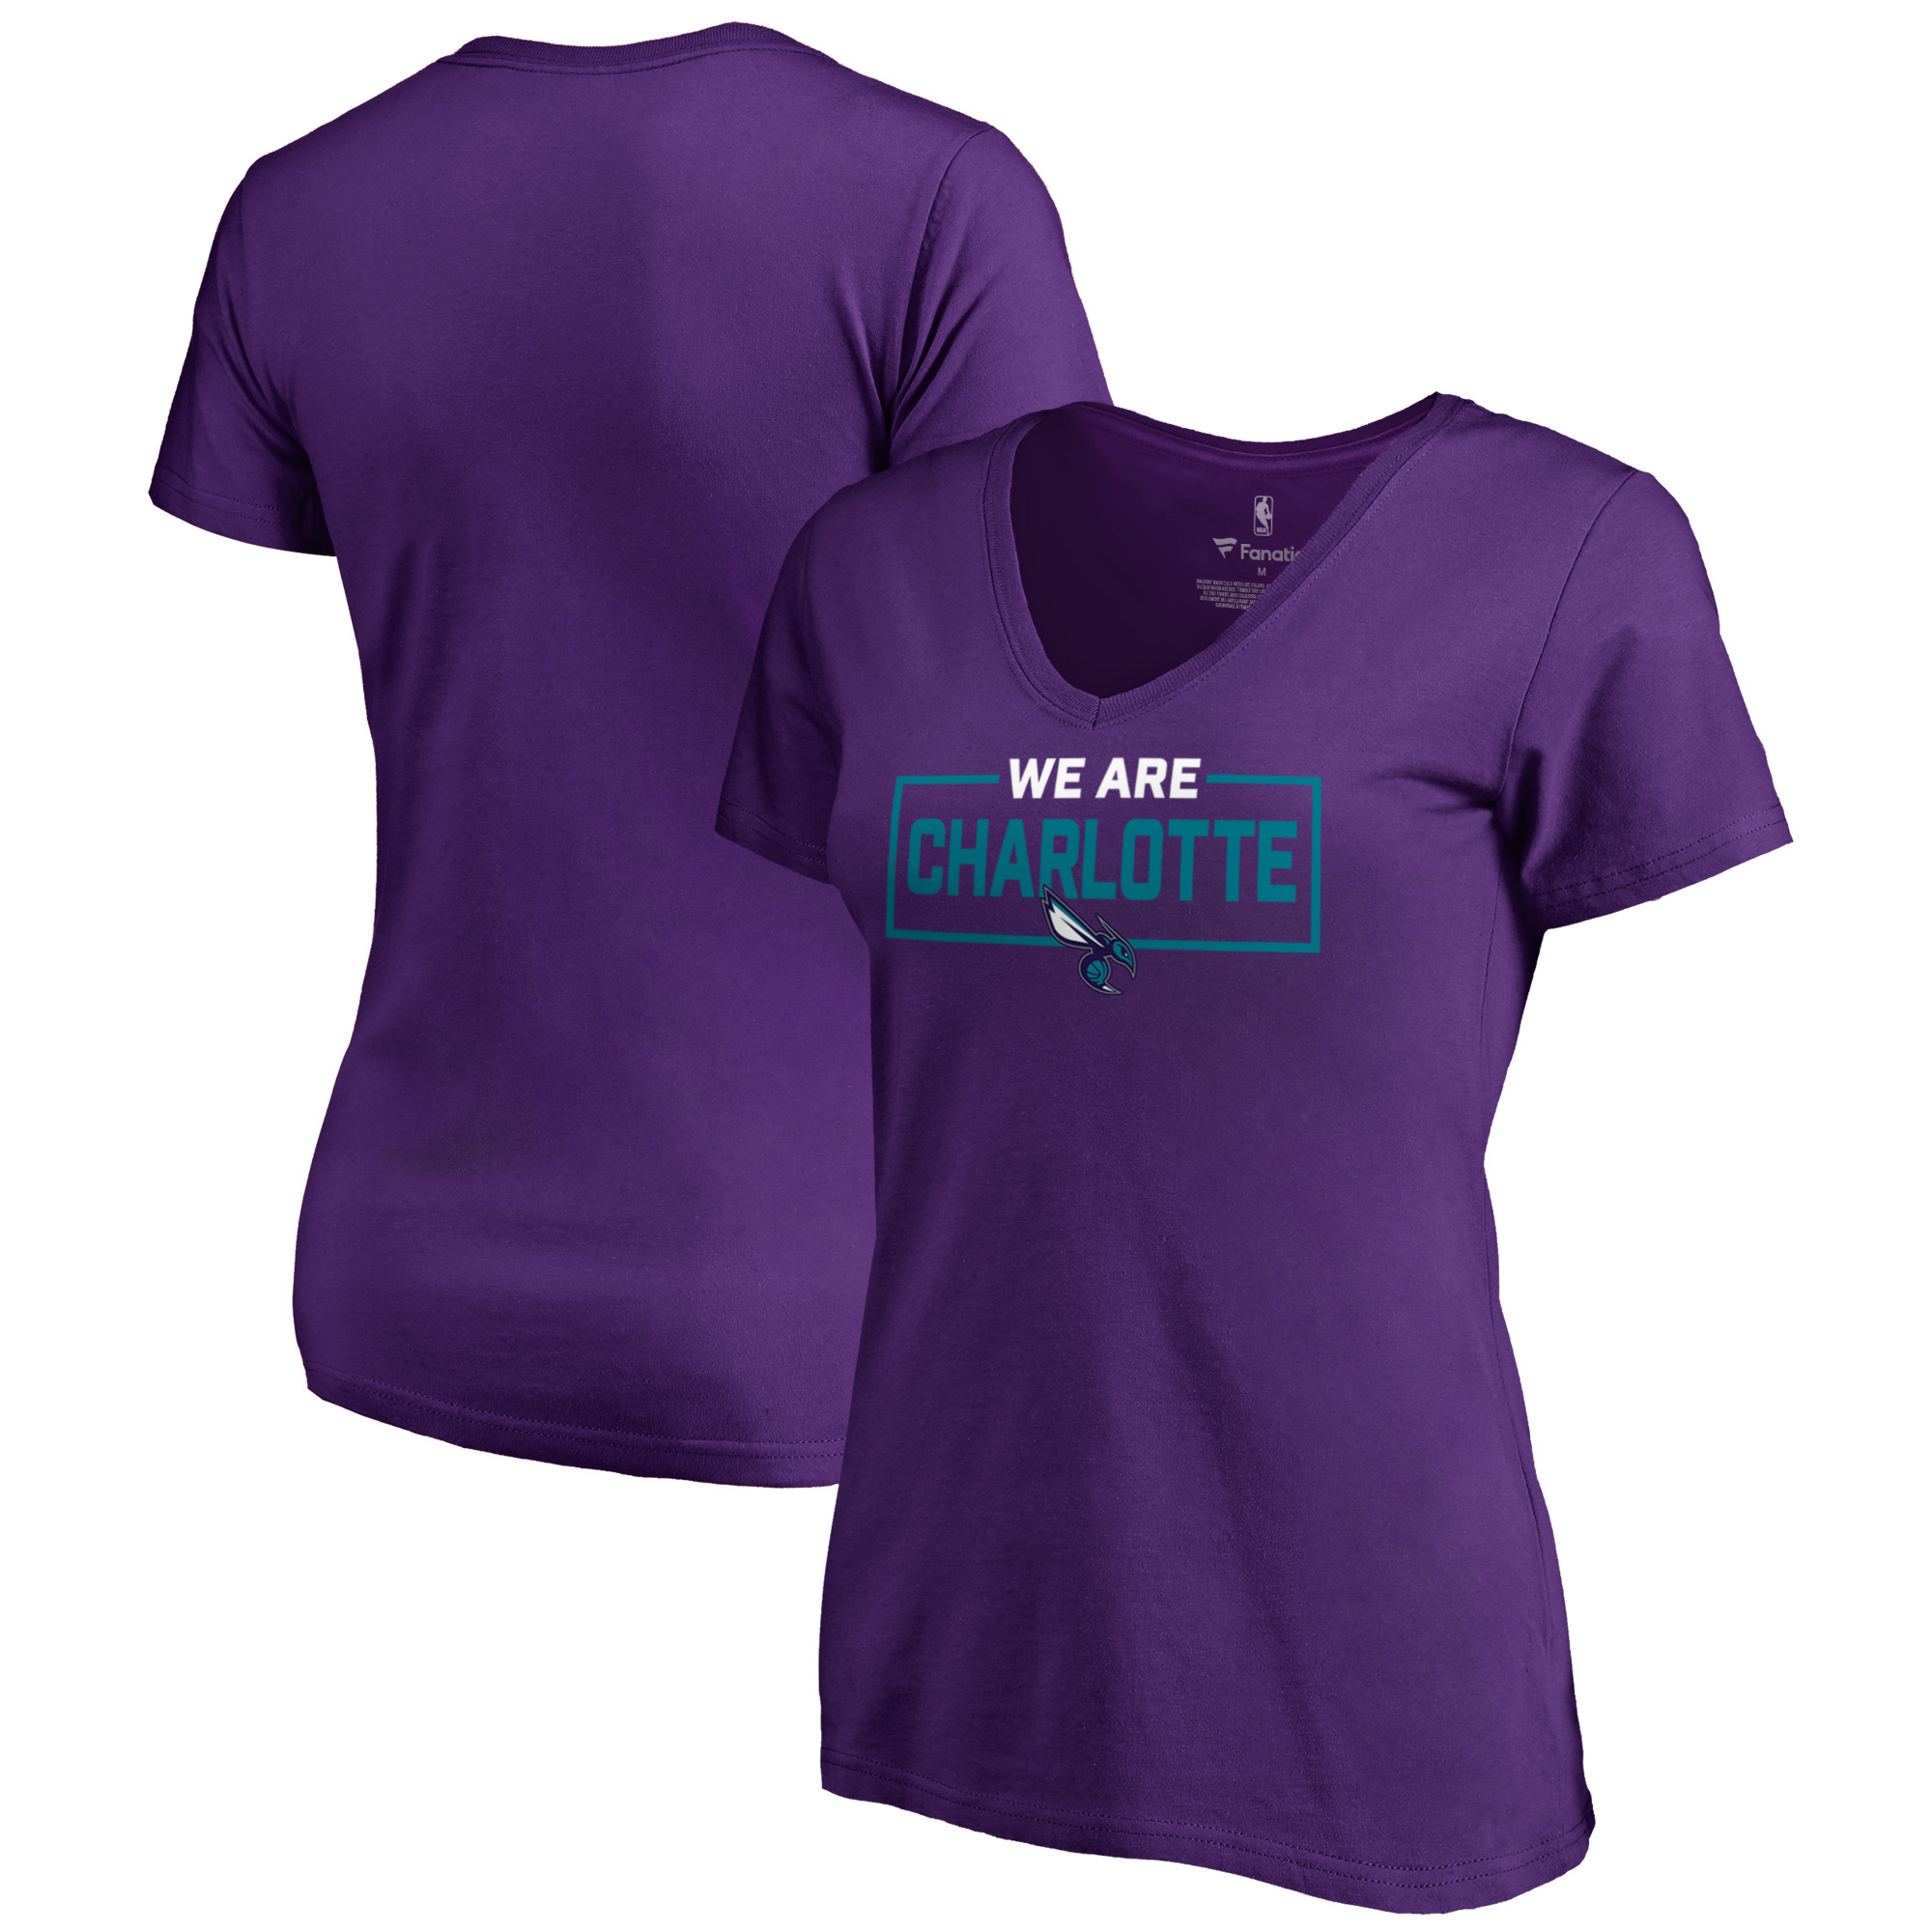 Charlotte Hornets Fanatics Branded Women's We Are Iconic Collection V-Neck T-Shirt - Purple